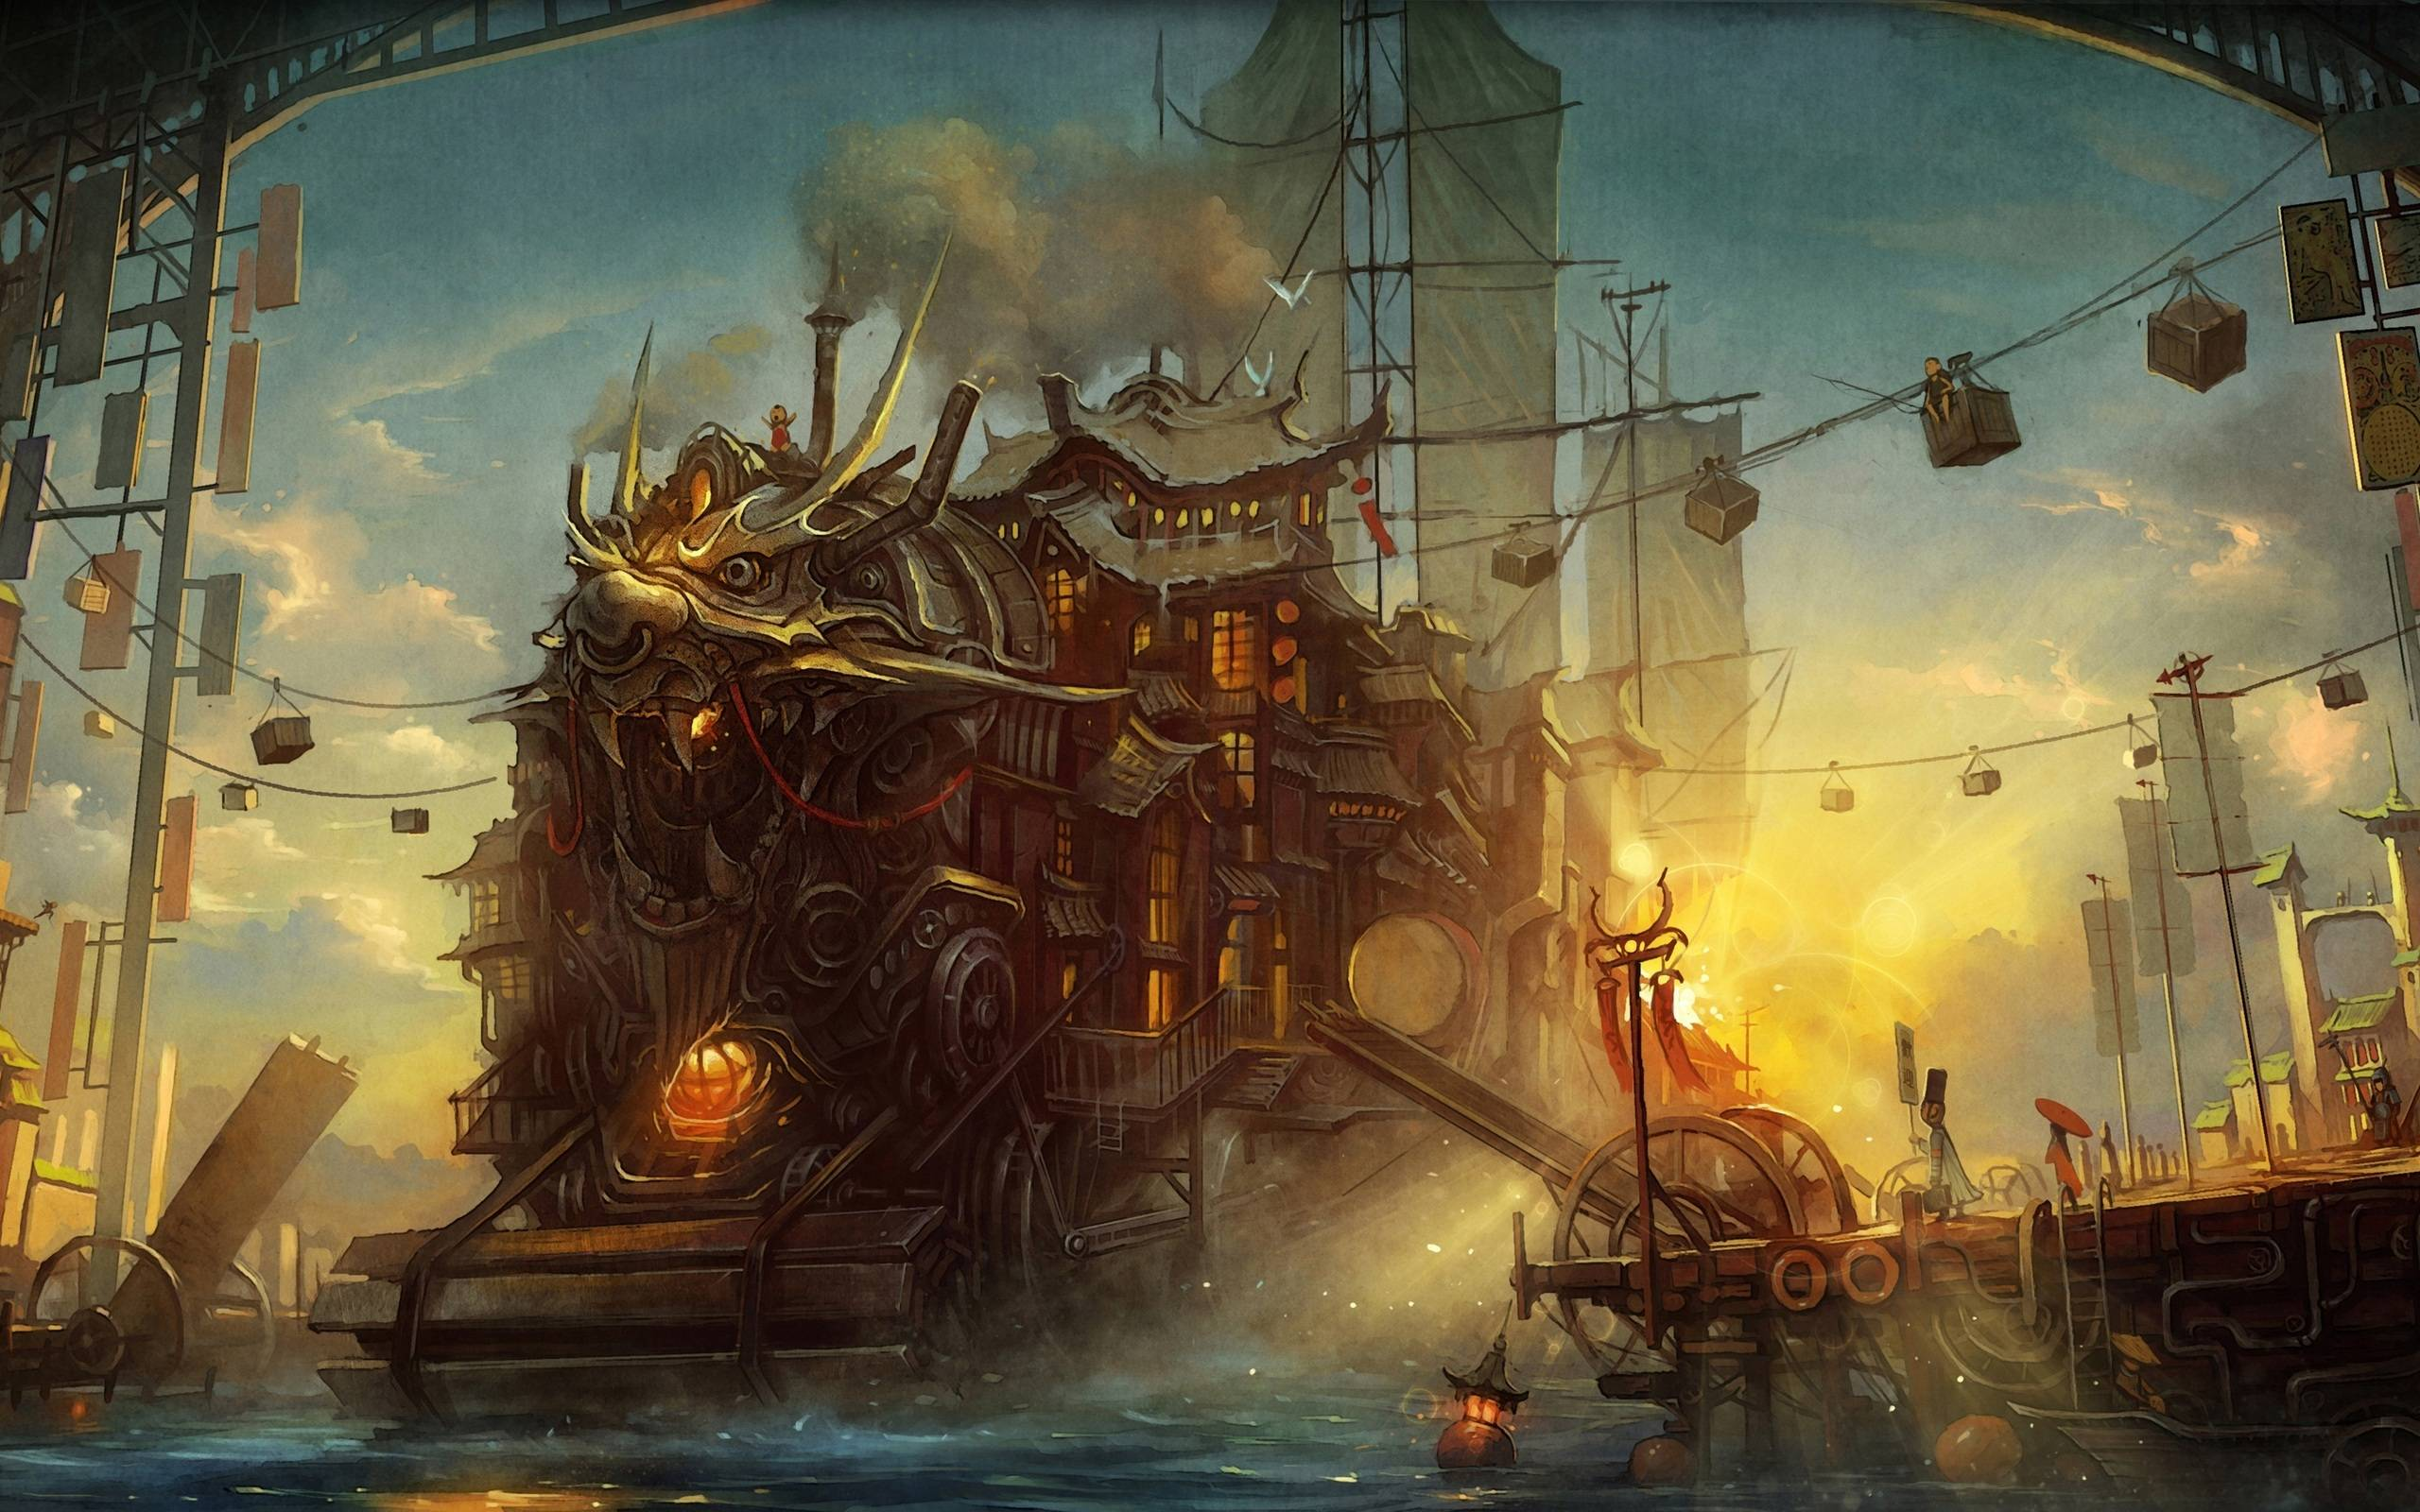 Steampunk Wallpapers 2560x1600